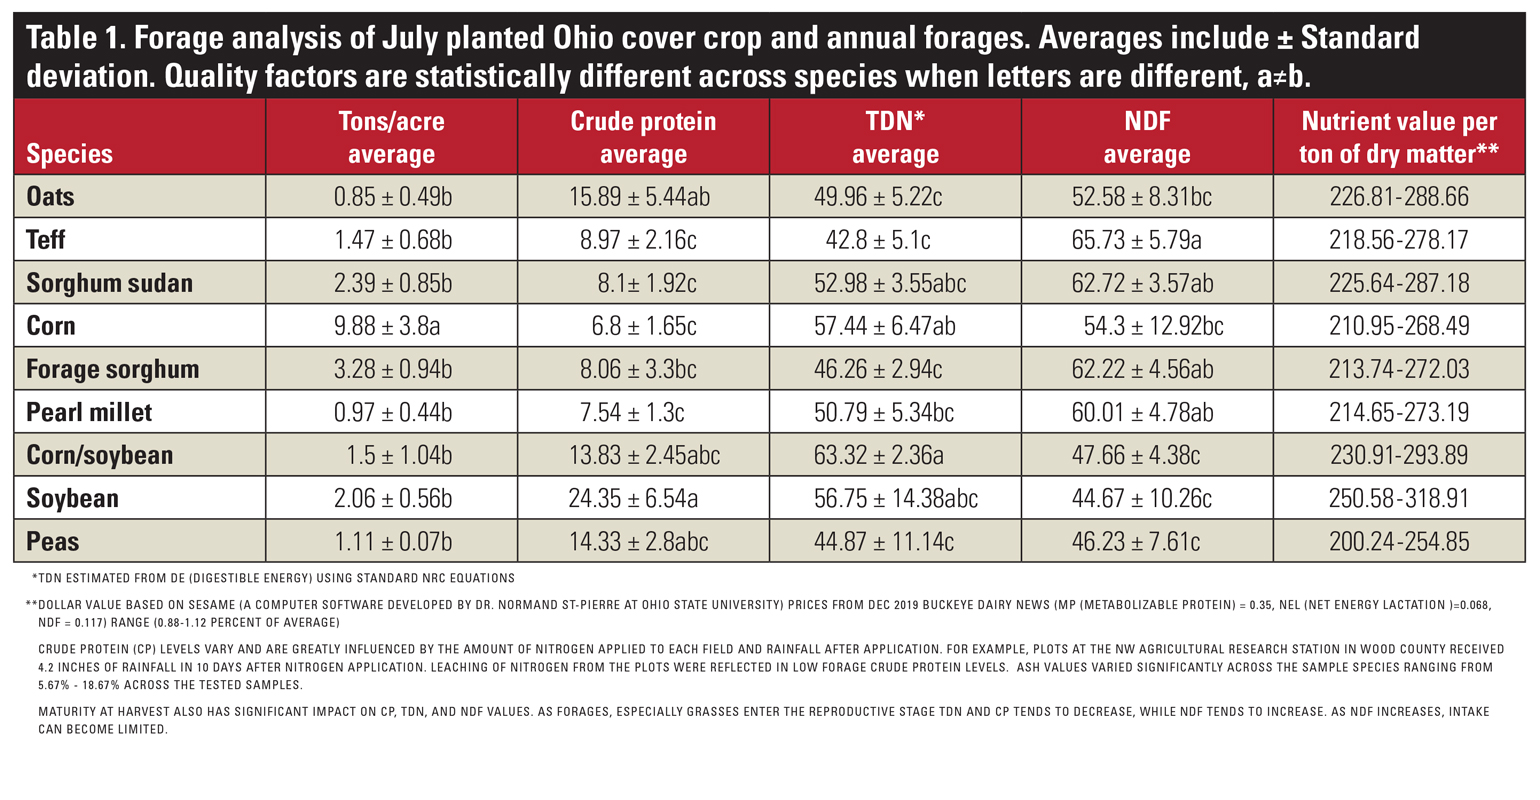 Forage analysis of July planted Ohio cover crop and annual forages